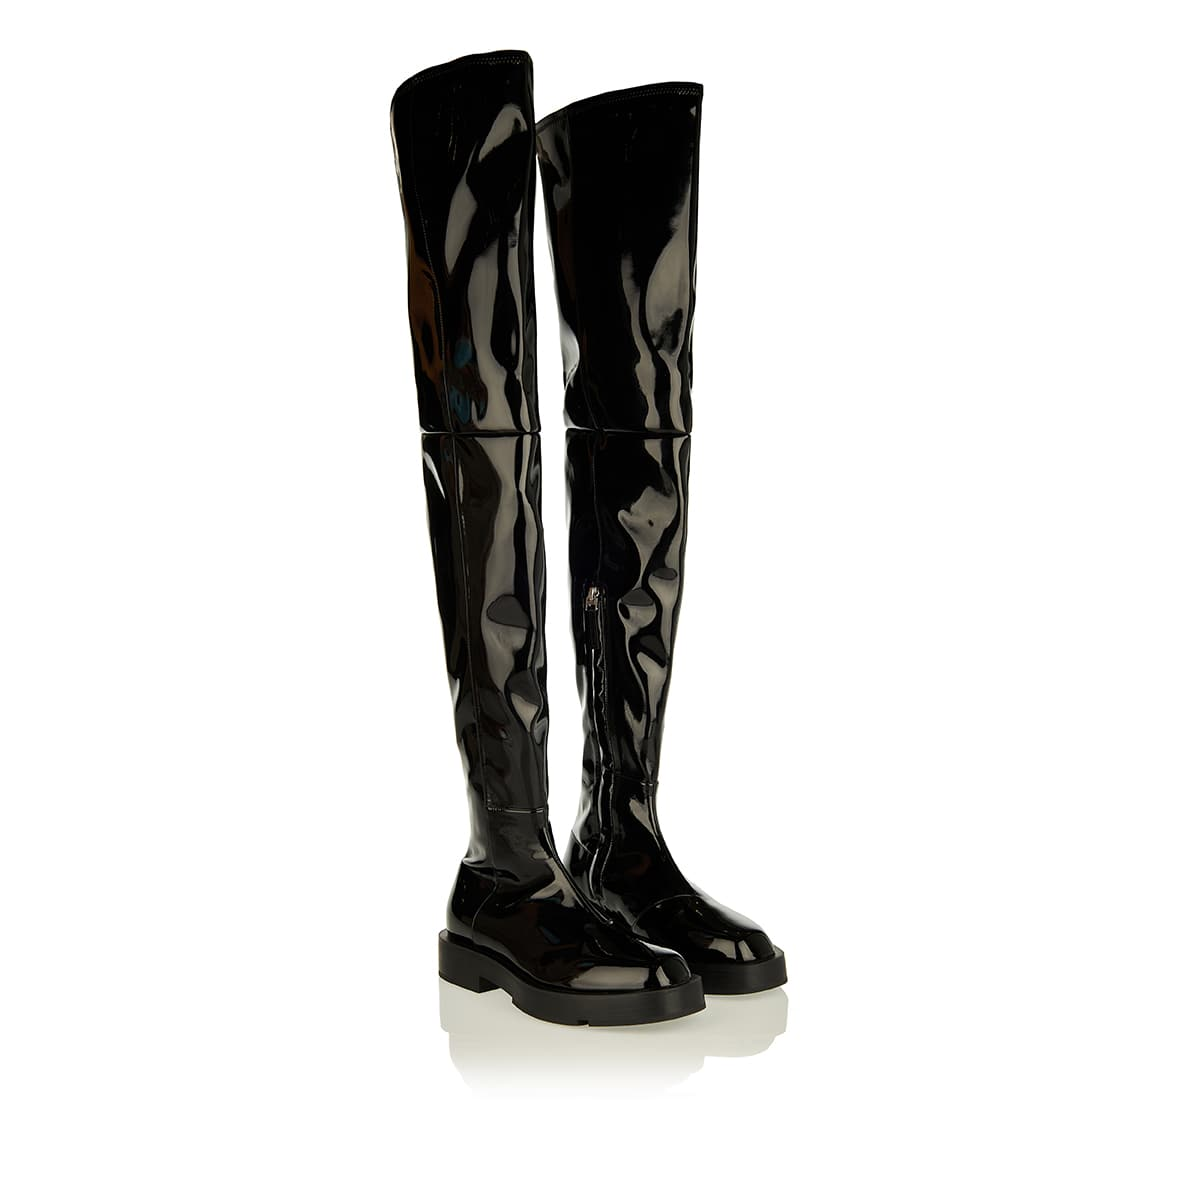 Patent leather thigh boots